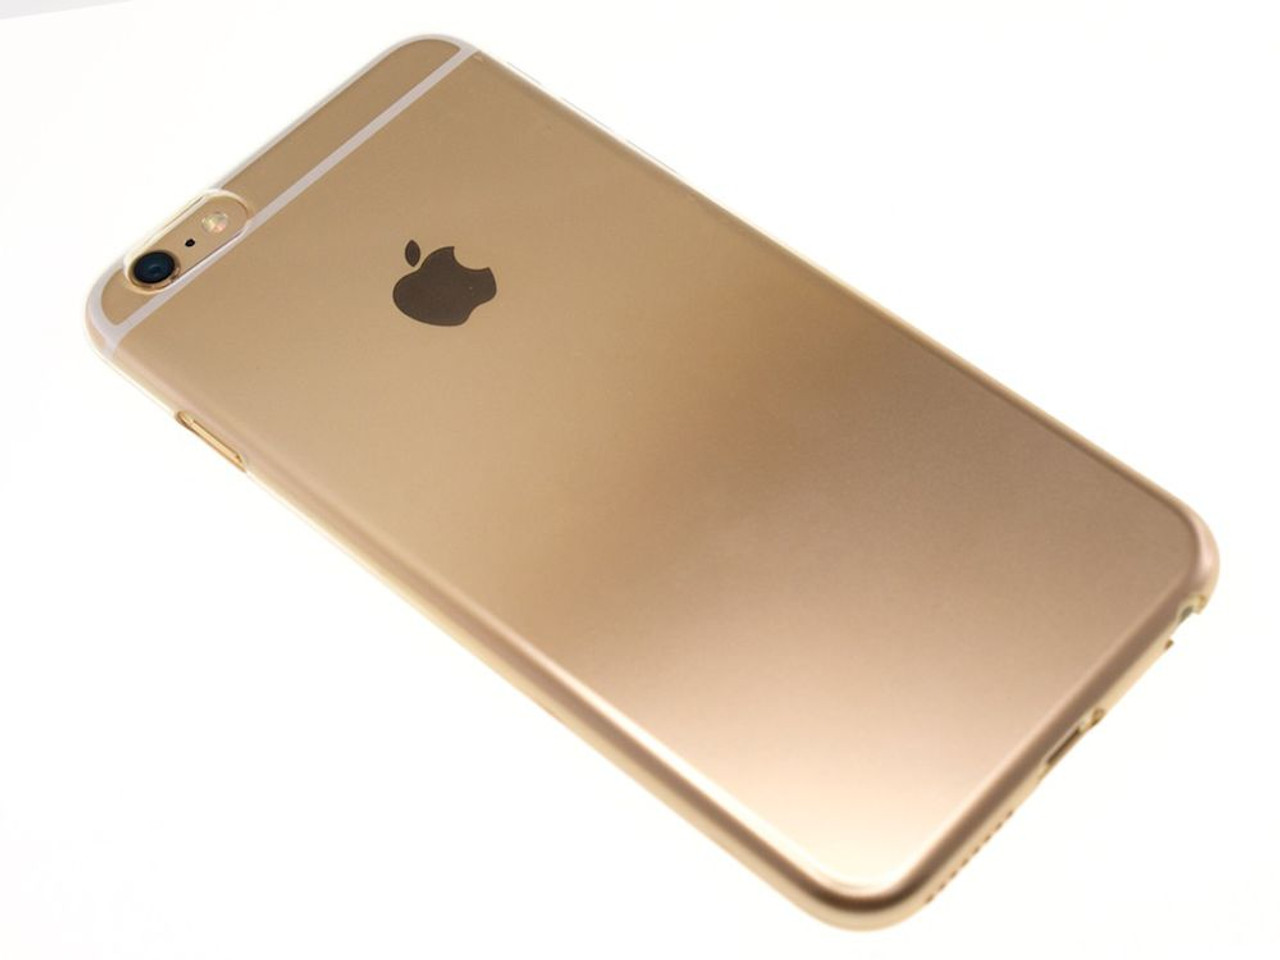 for iphone 6s plus 6 Case iphone6 Gold